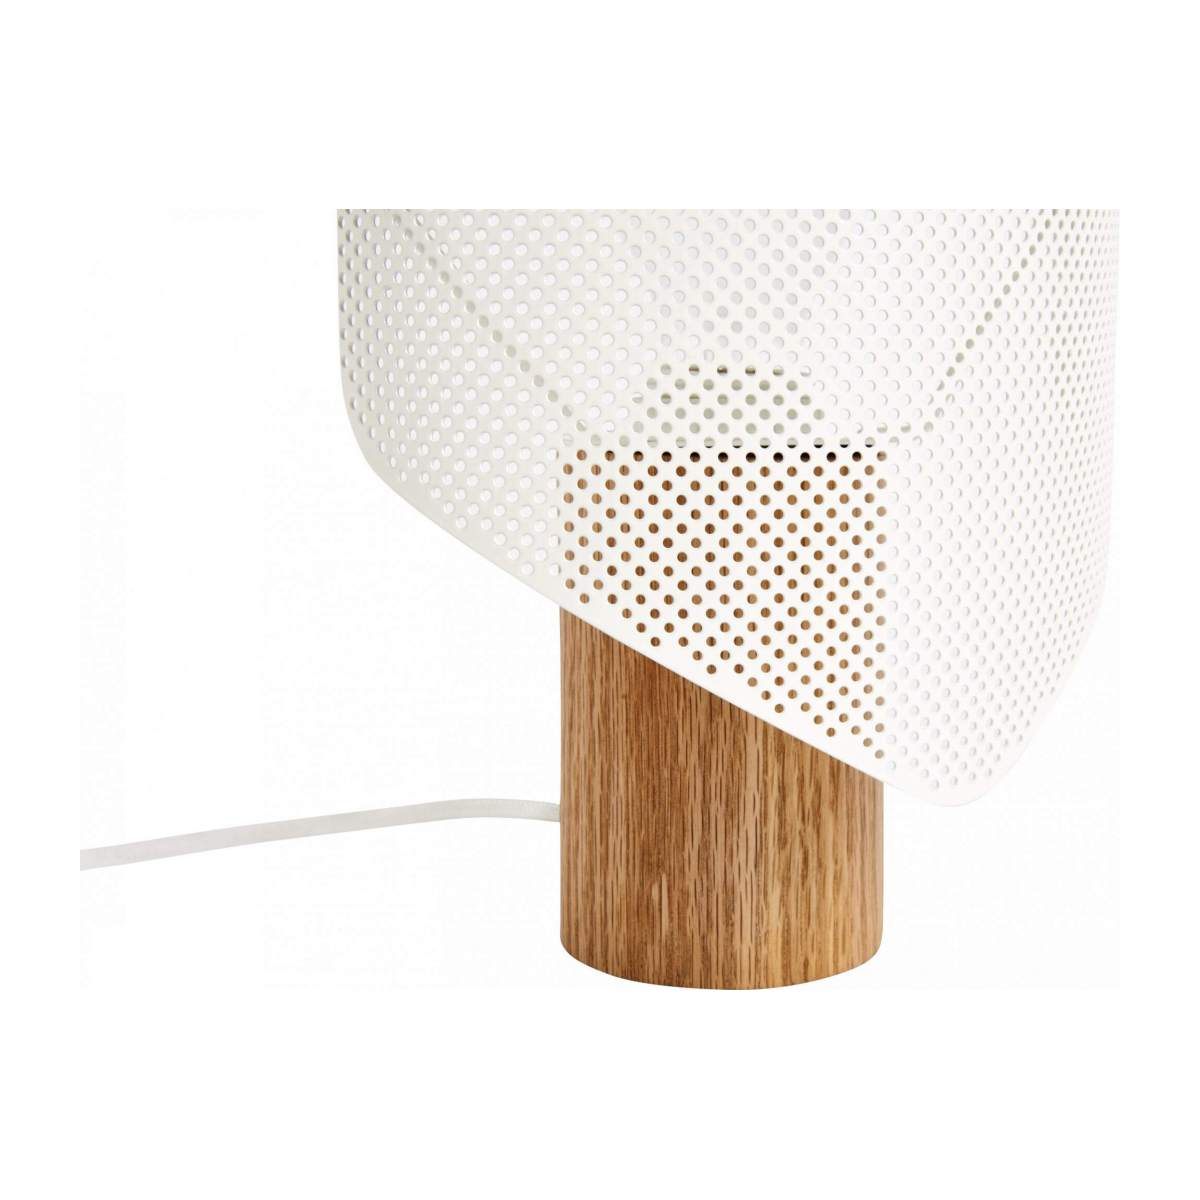 Lampe de table blanche n°8